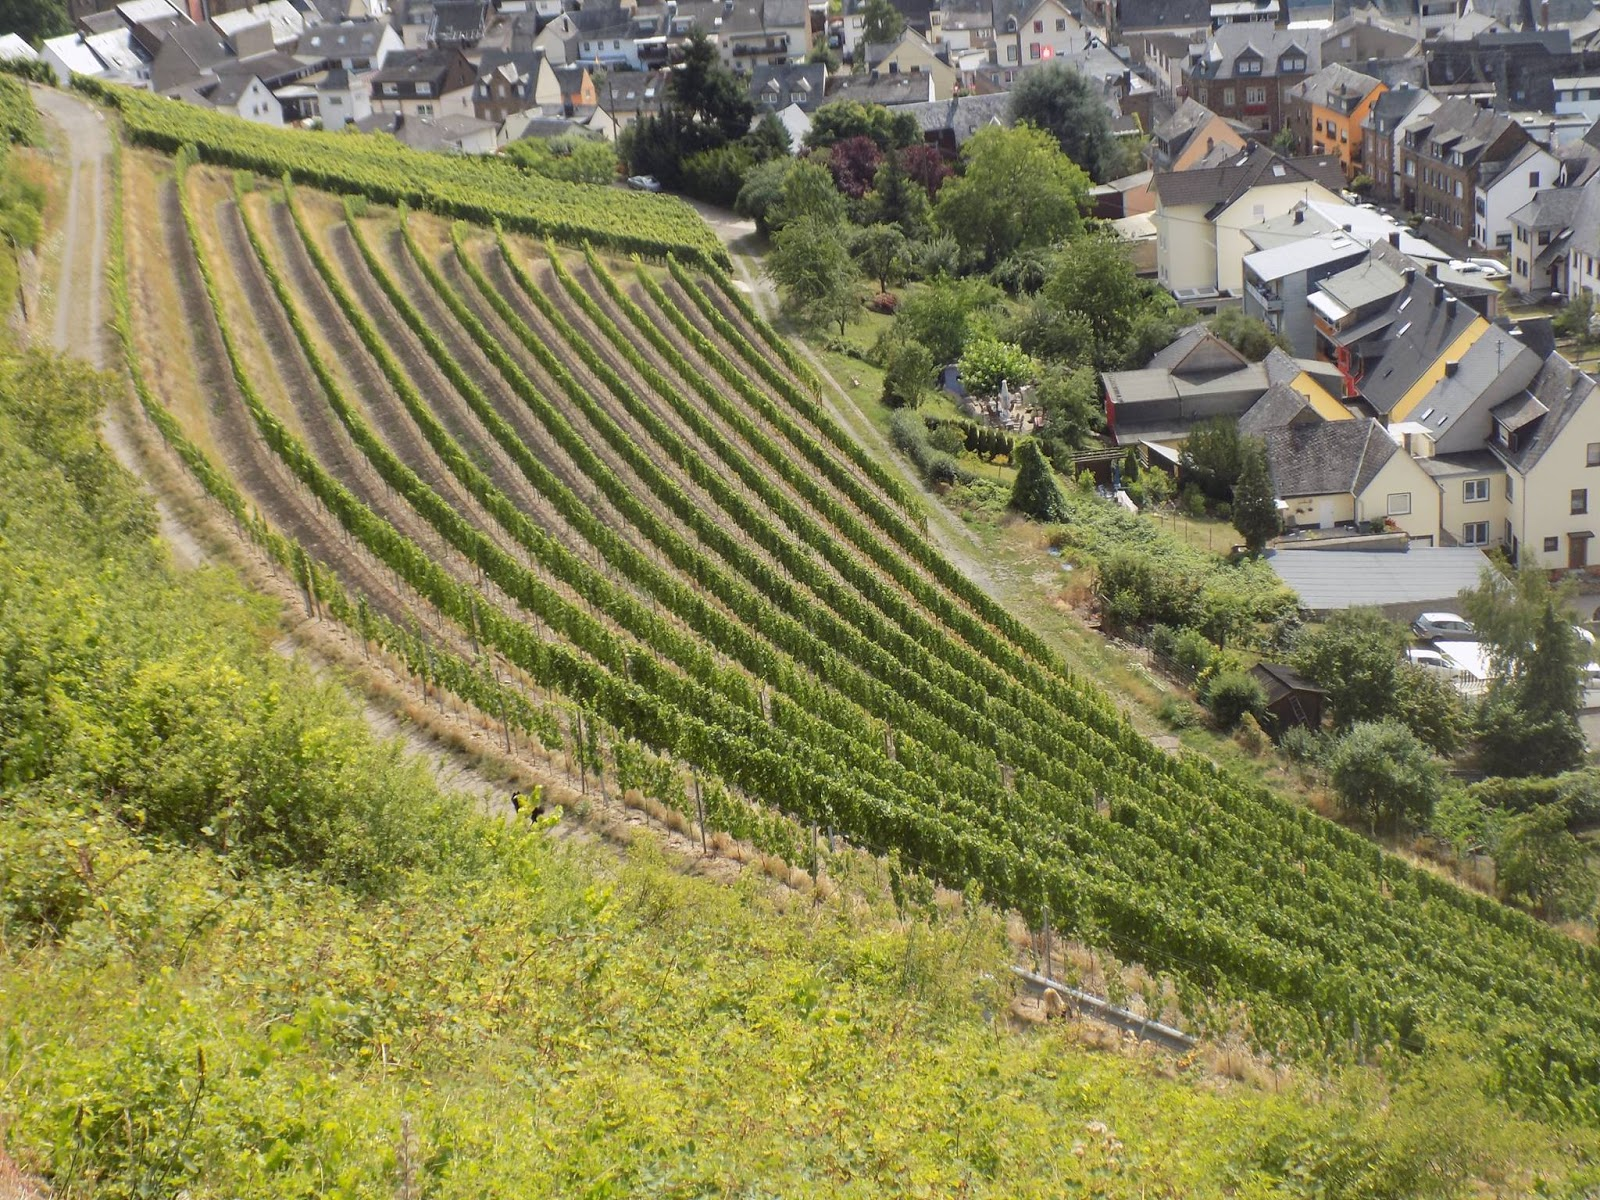 we just wandered up towards the vines in search of pathways that would take us to the top where we saw a huge cross on a hill in the landscape